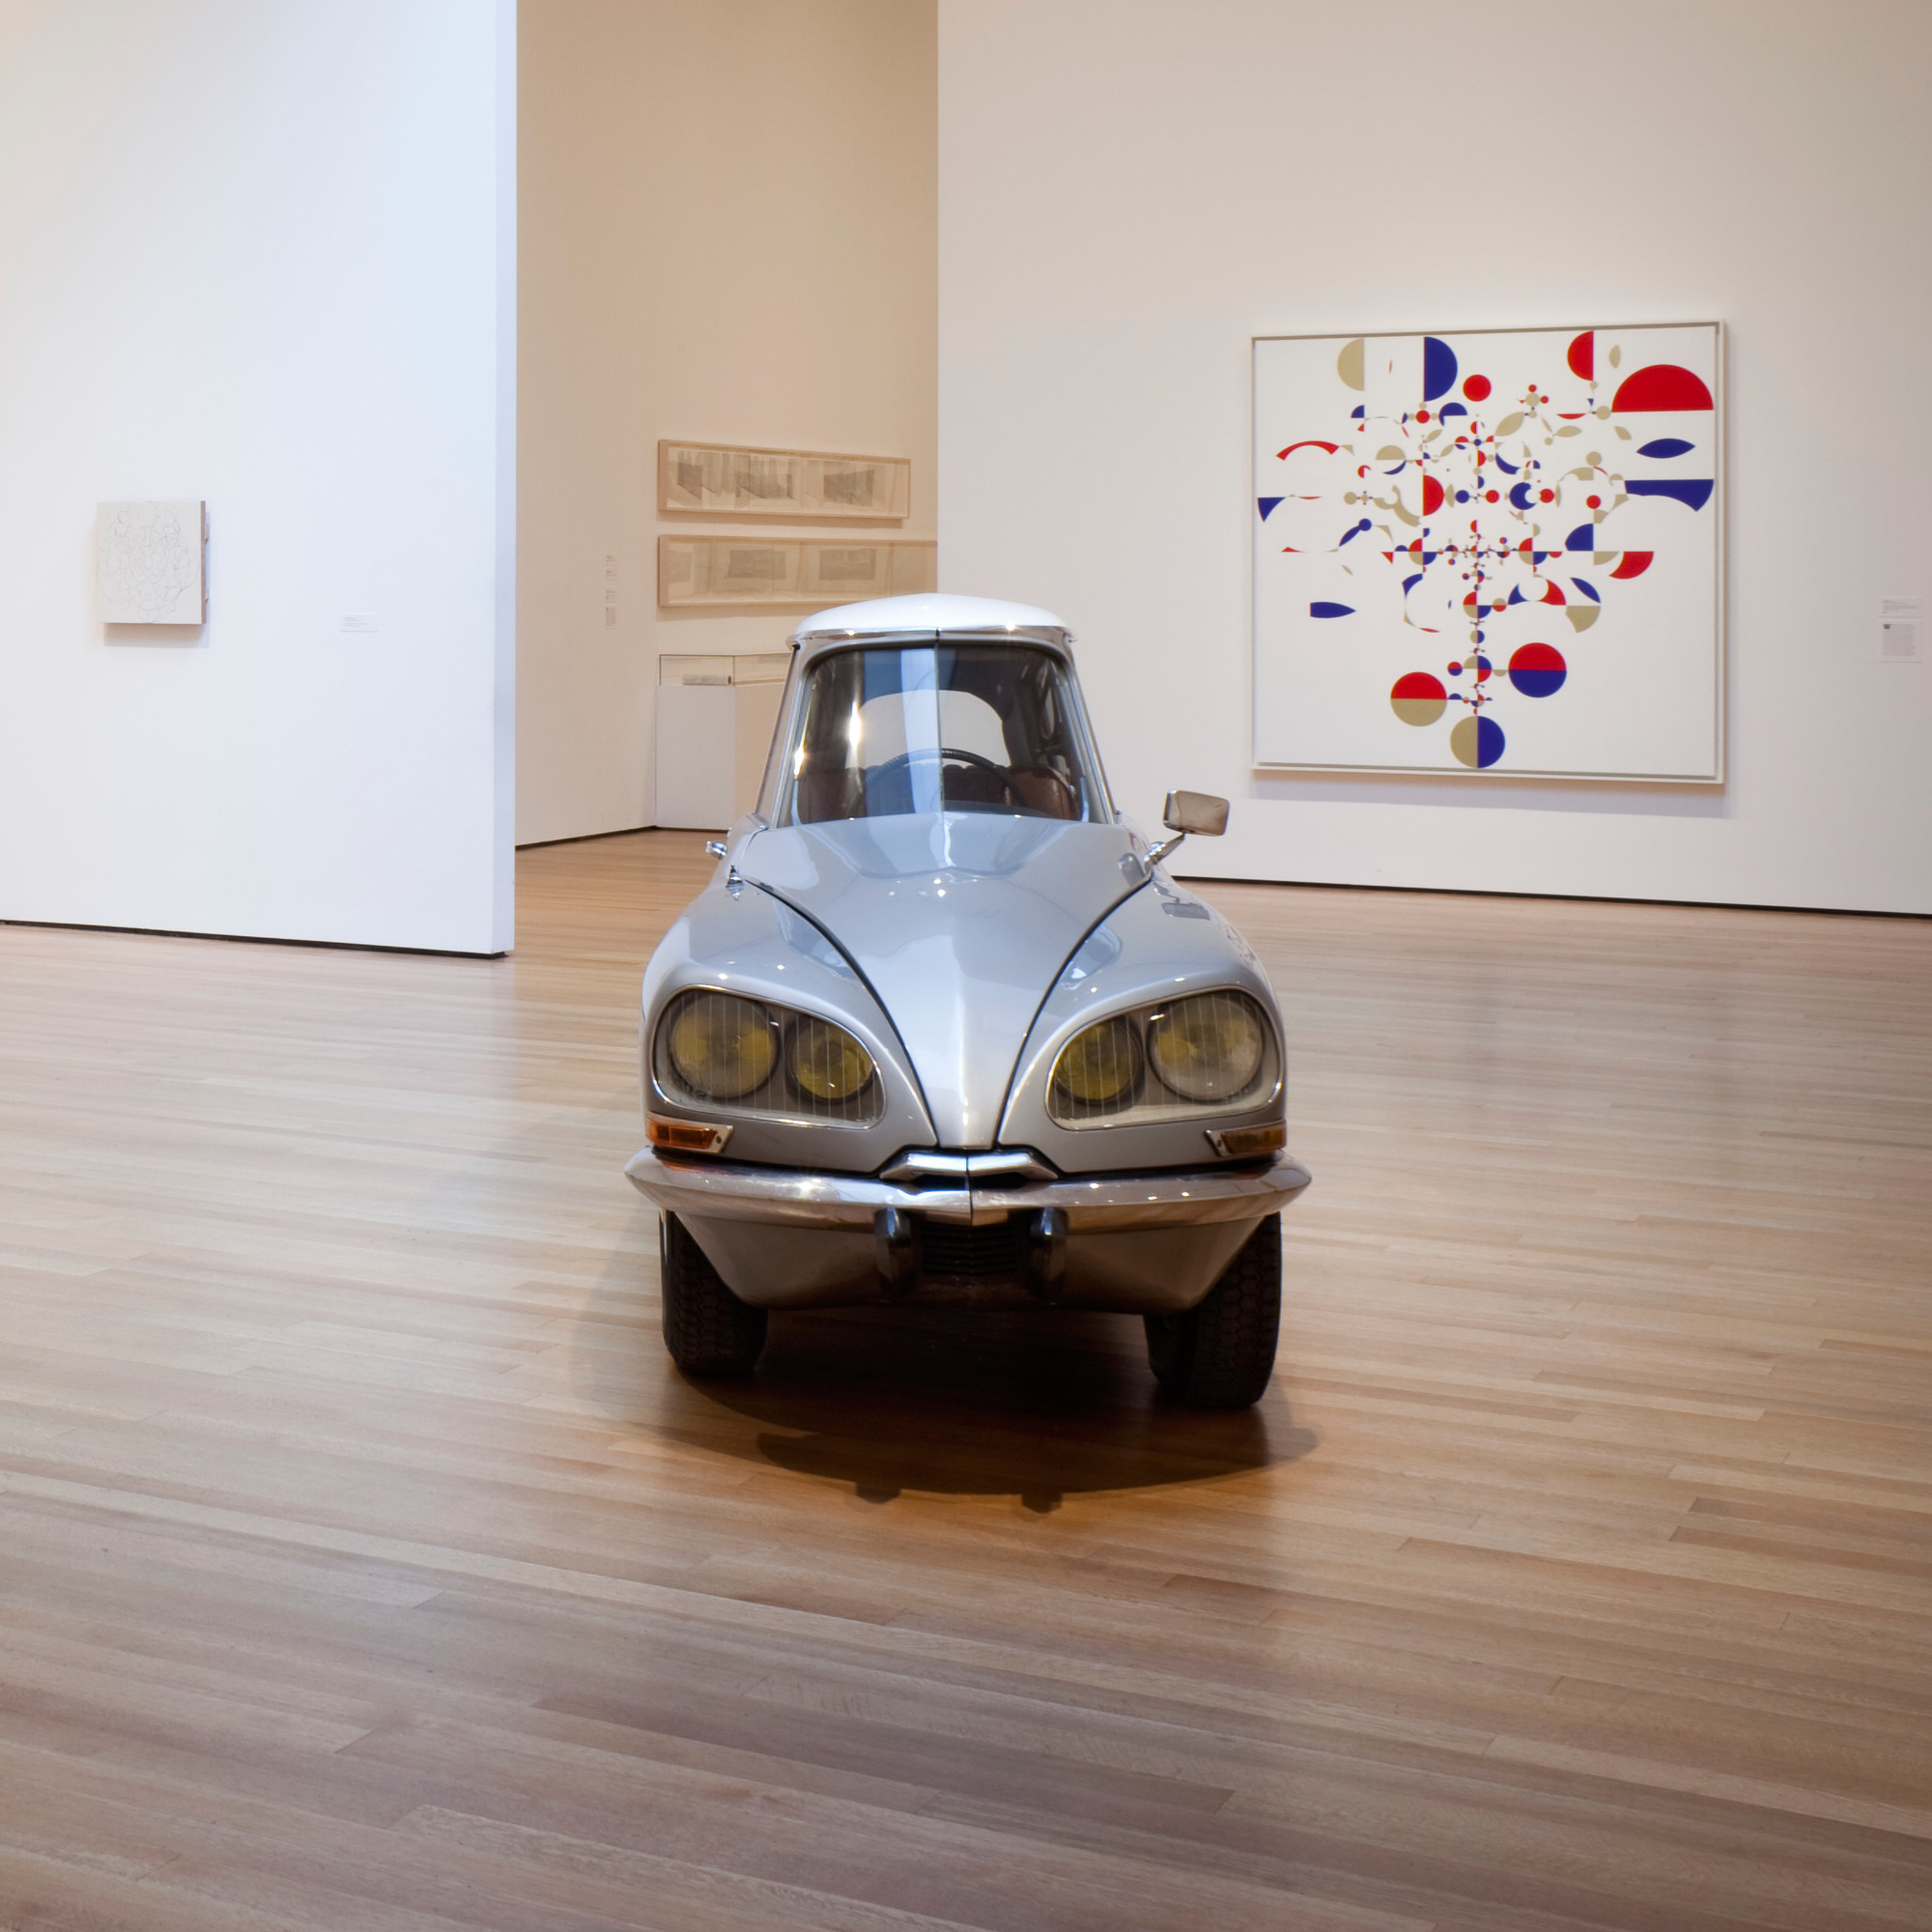 Installation view of Gabriel Orozco at The Museum of Modern Art, New York. Photo: Jonathan Muzikar